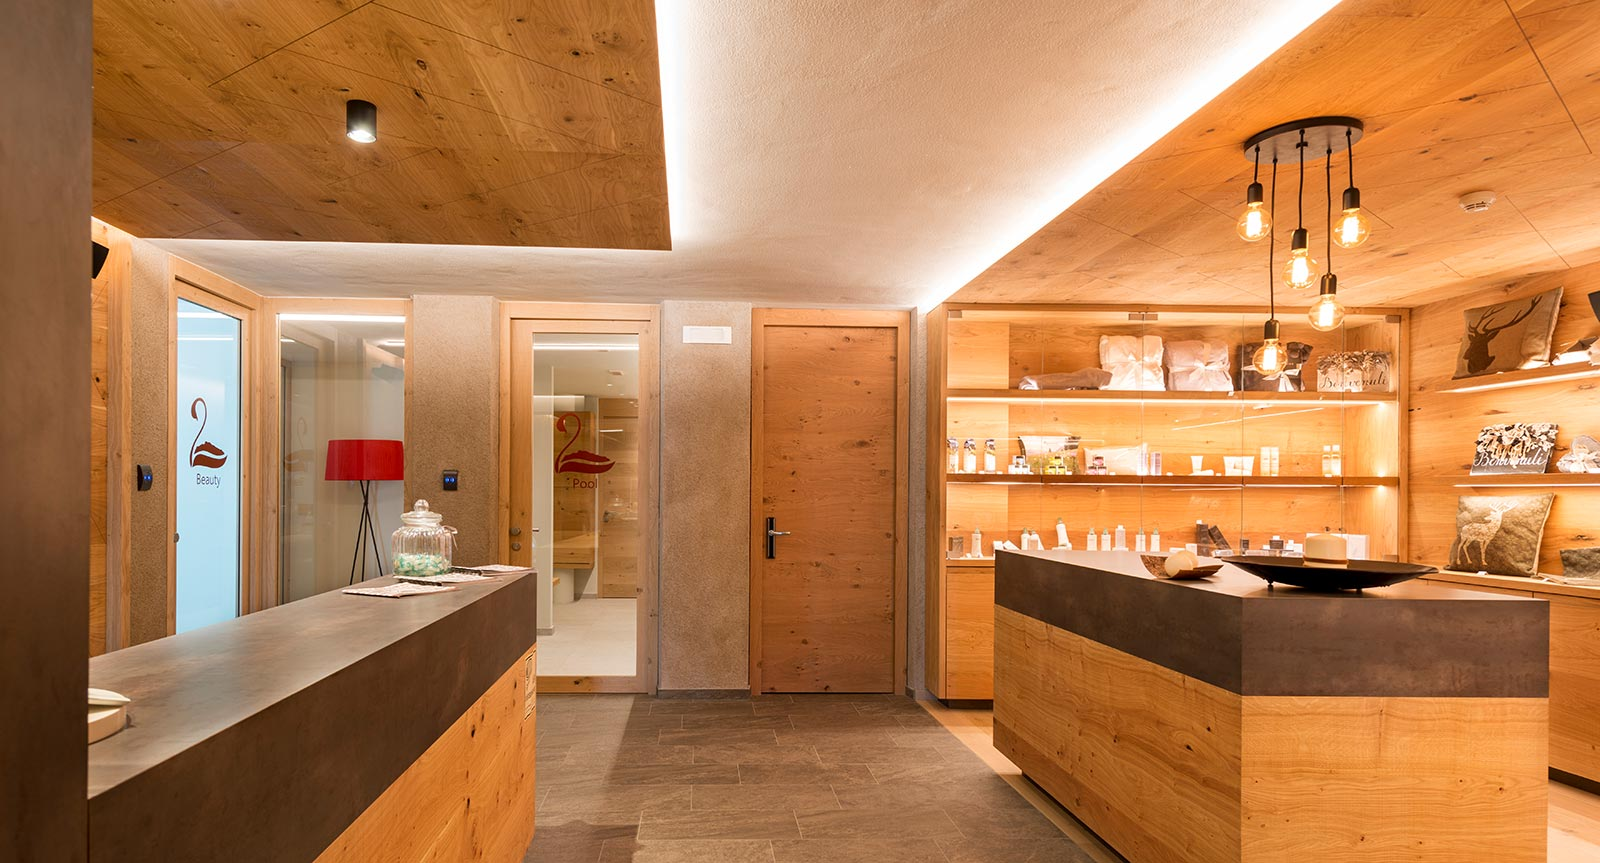 the Beuty Shop in the spa area of the Hotel Lech da Sompunt